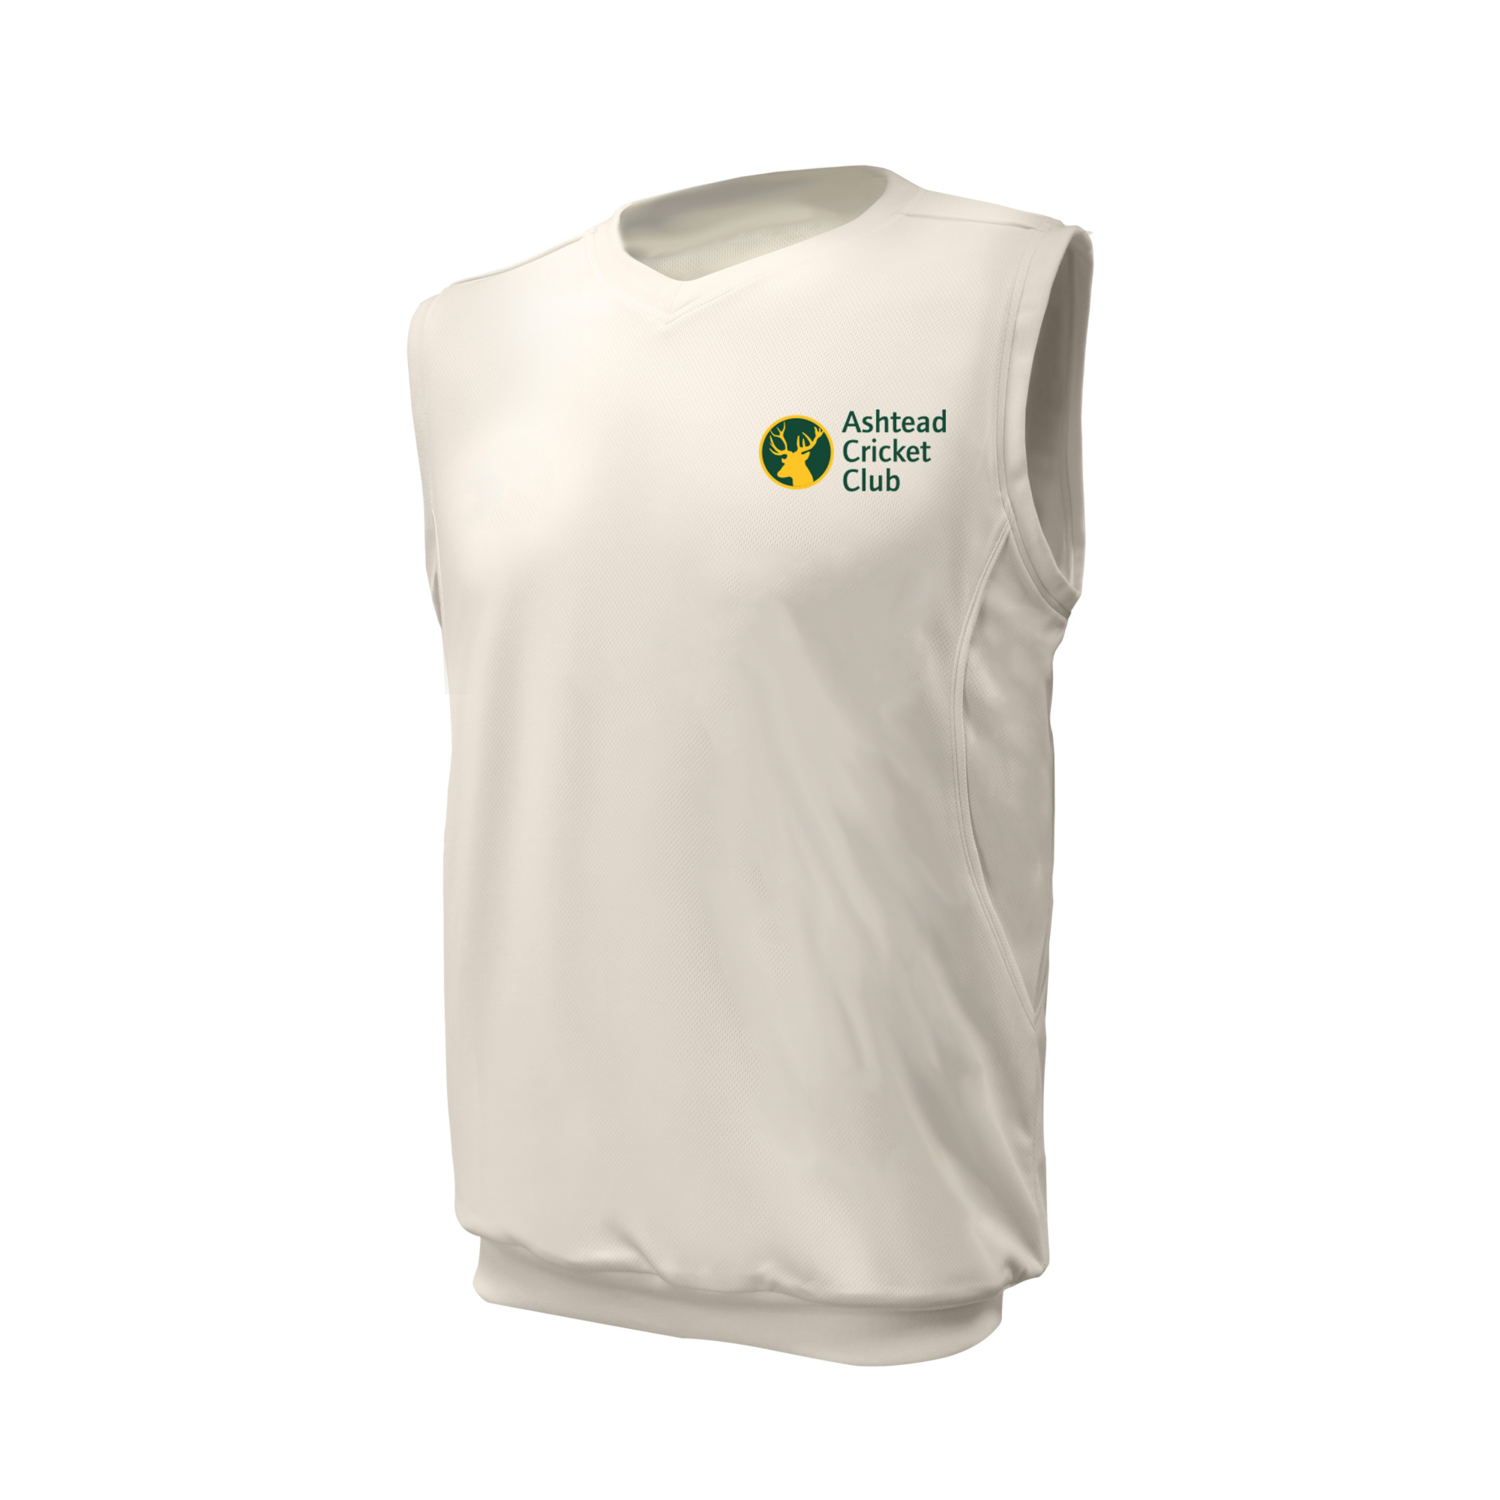 Ashtead Cricket Club embroidered Sleeveless Playing Sweater